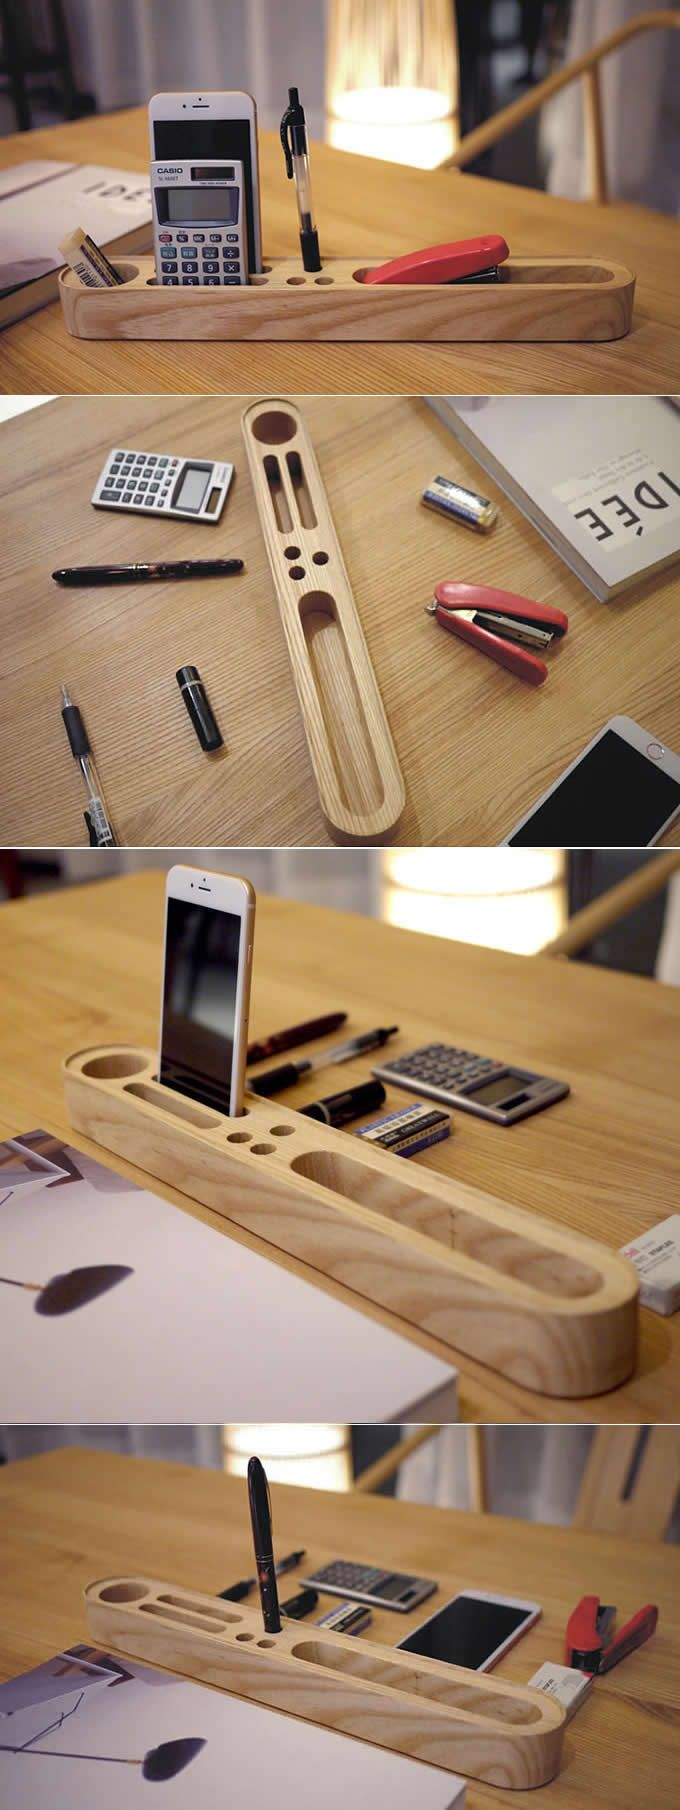 wooden office supplies desk organizer storage container phone stand holder pen pencil business. Black Bedroom Furniture Sets. Home Design Ideas